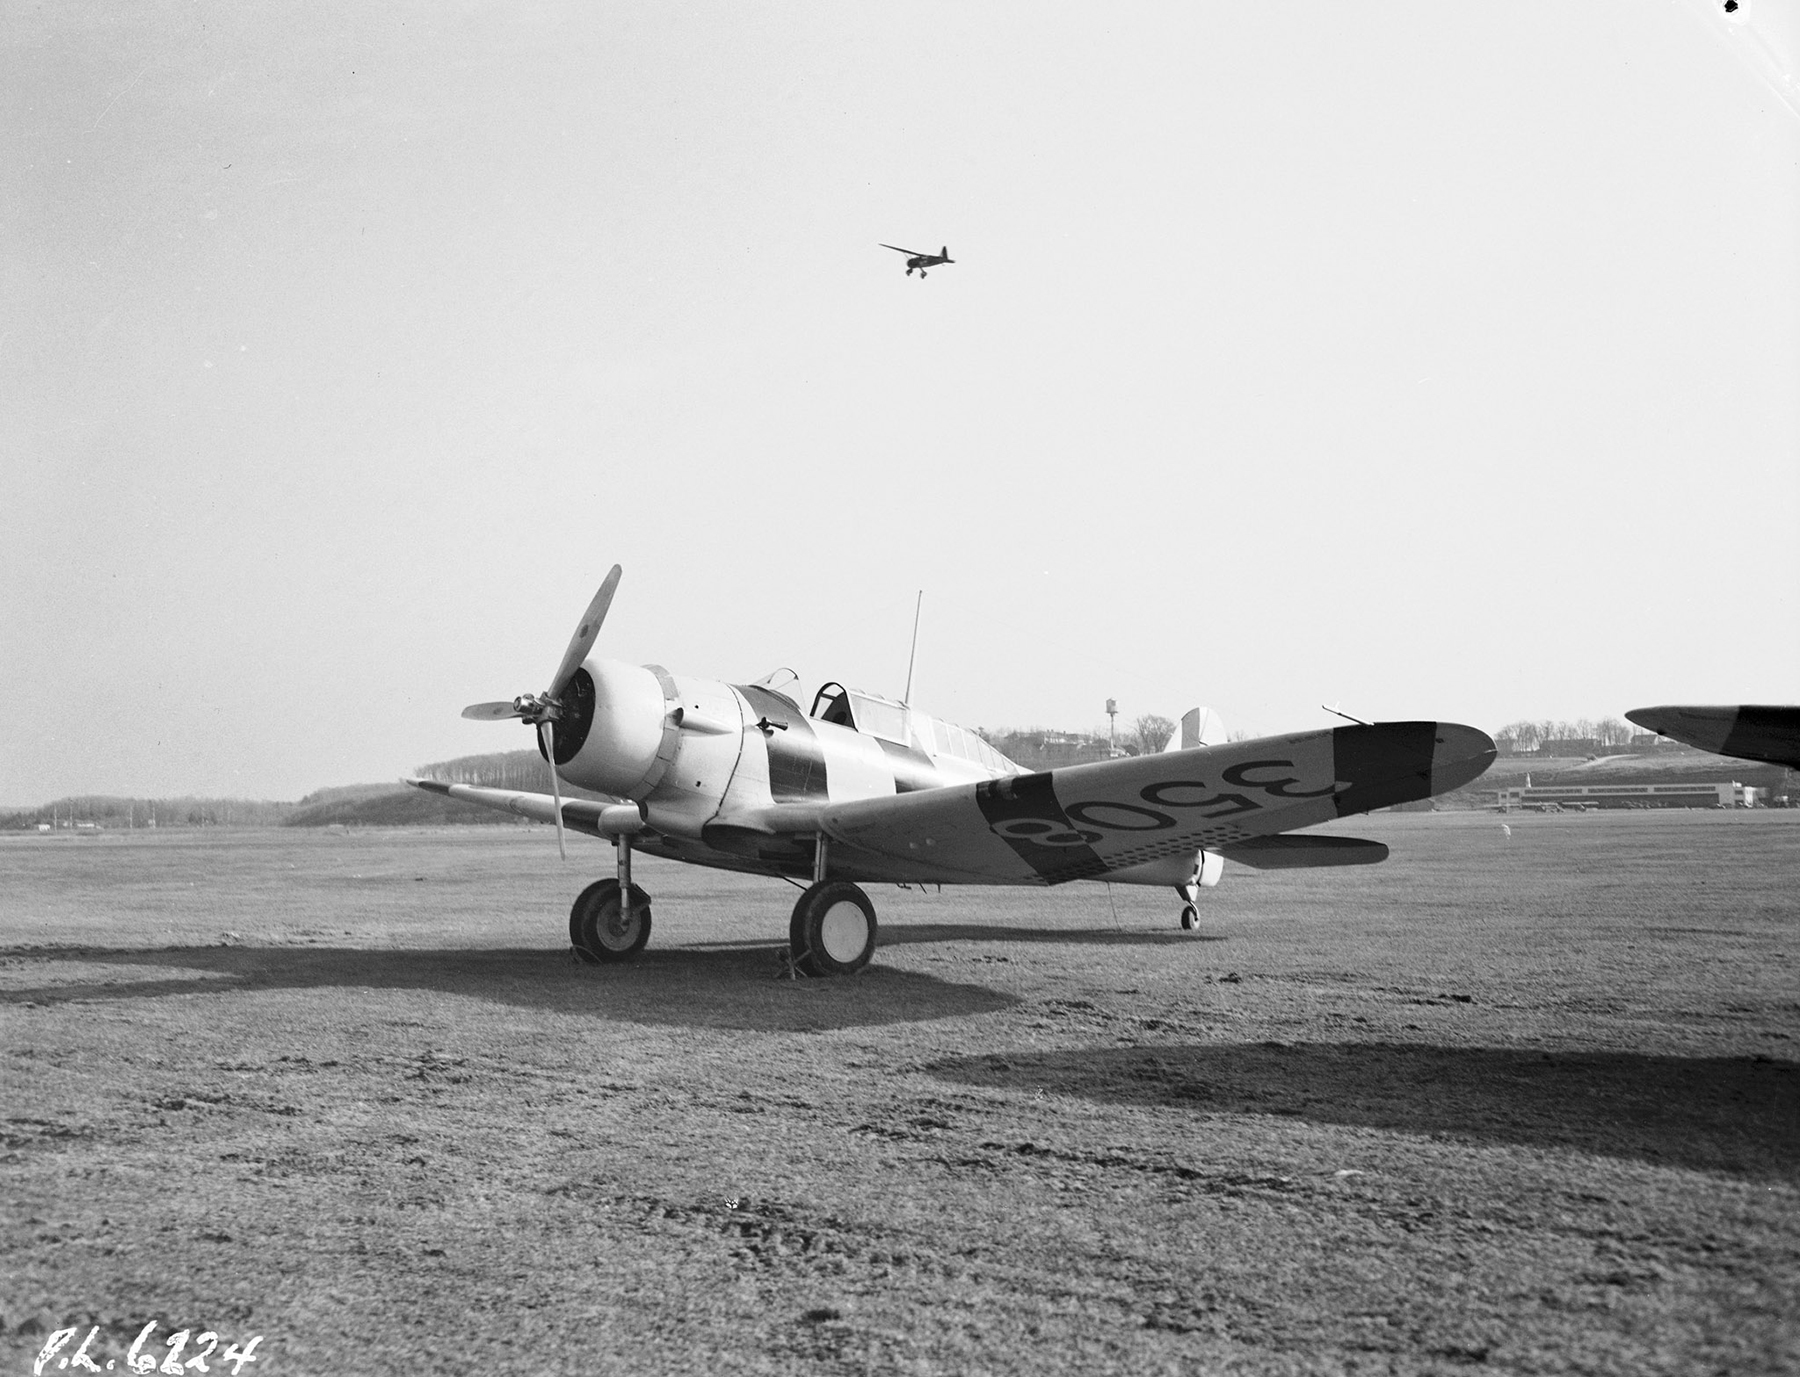 A port-front view of a Northrop Nomad.